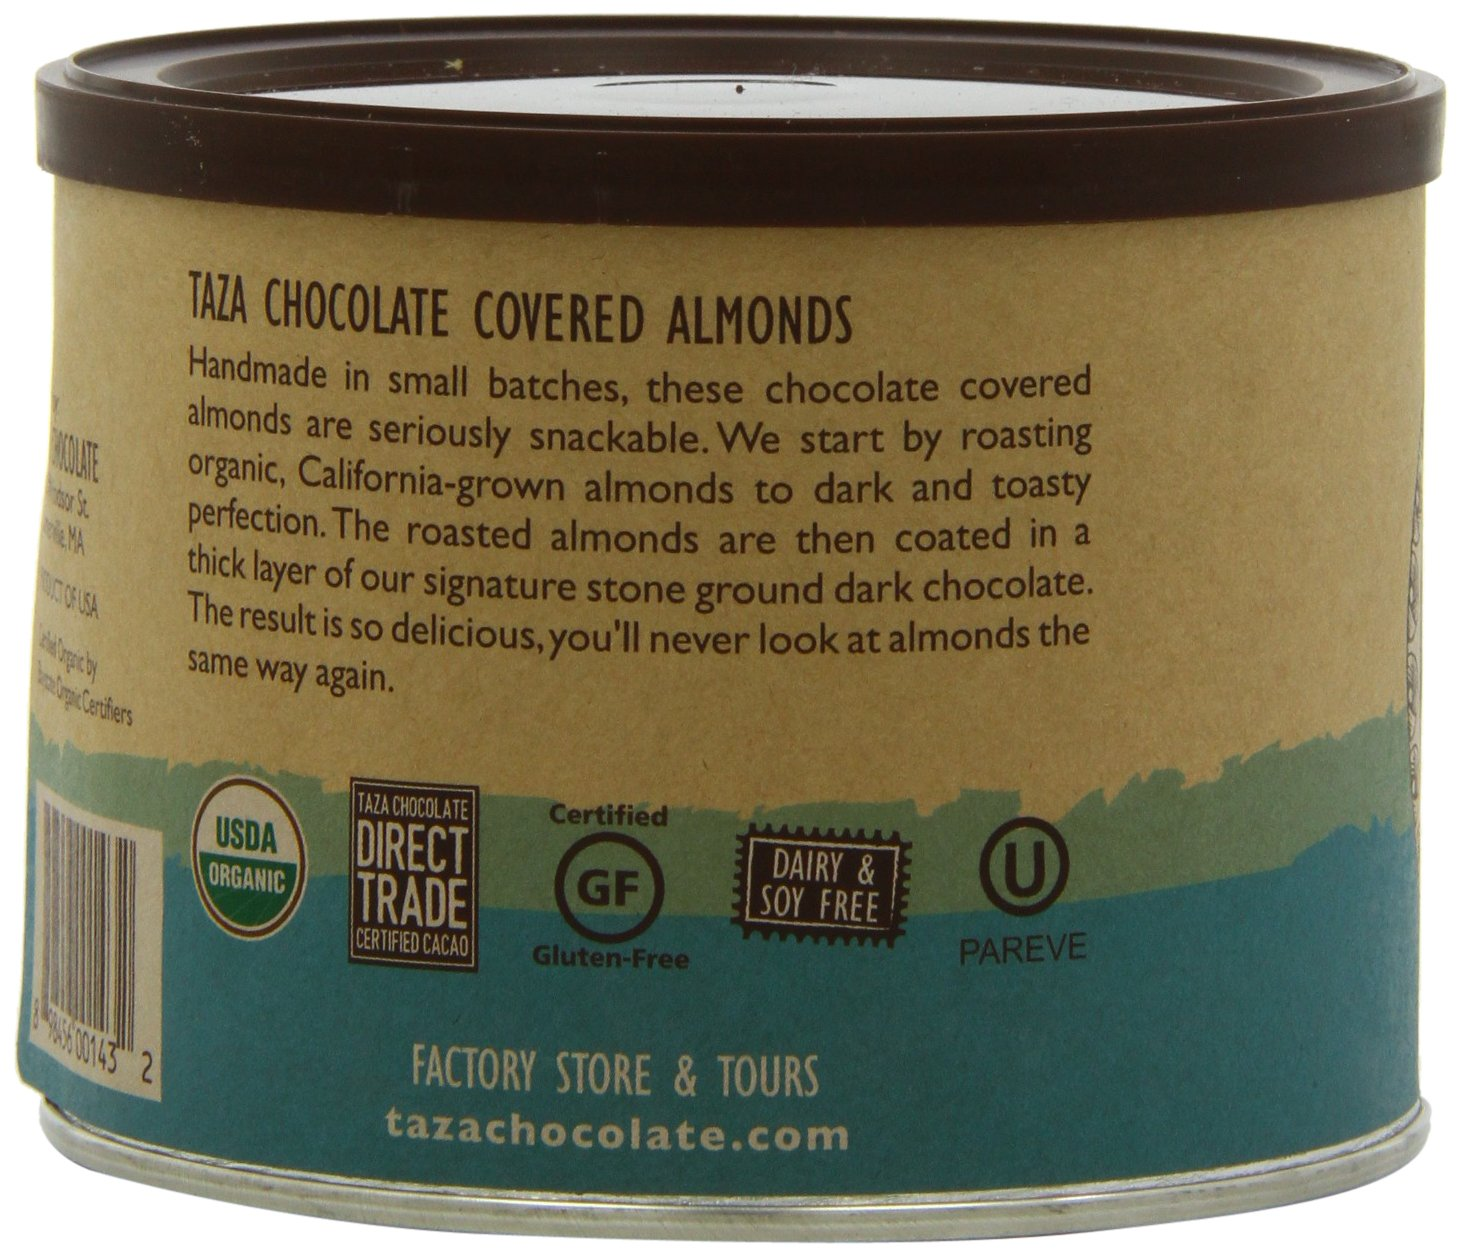 Amazon.com : Taza Chocolate Chocolate Covered Almonds, 8 Ounce ...